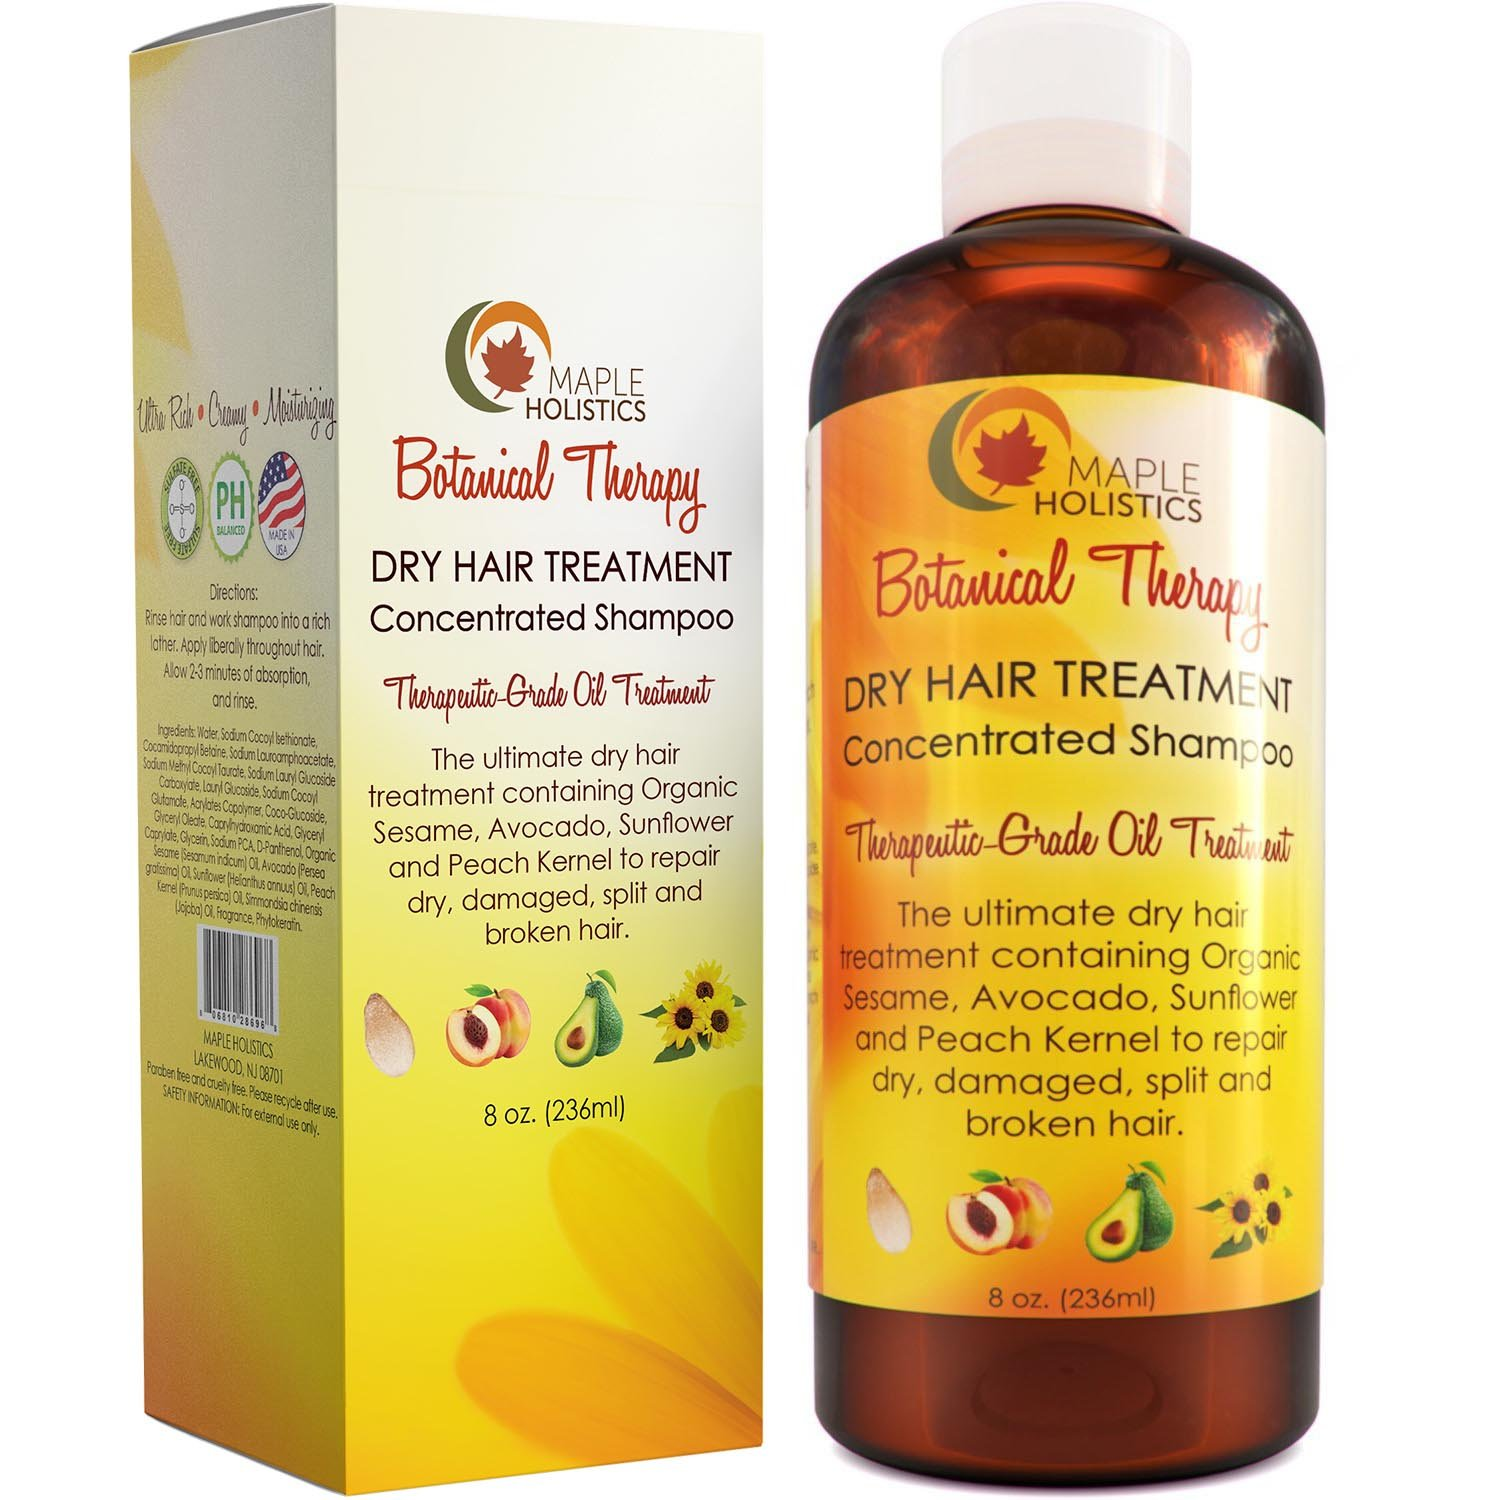 Moisturizing Shampoo for Dry Damaged Hair + Scalp - Anti Frizz Deep Conditioning Cleanser - Strengthen + Repair Hair